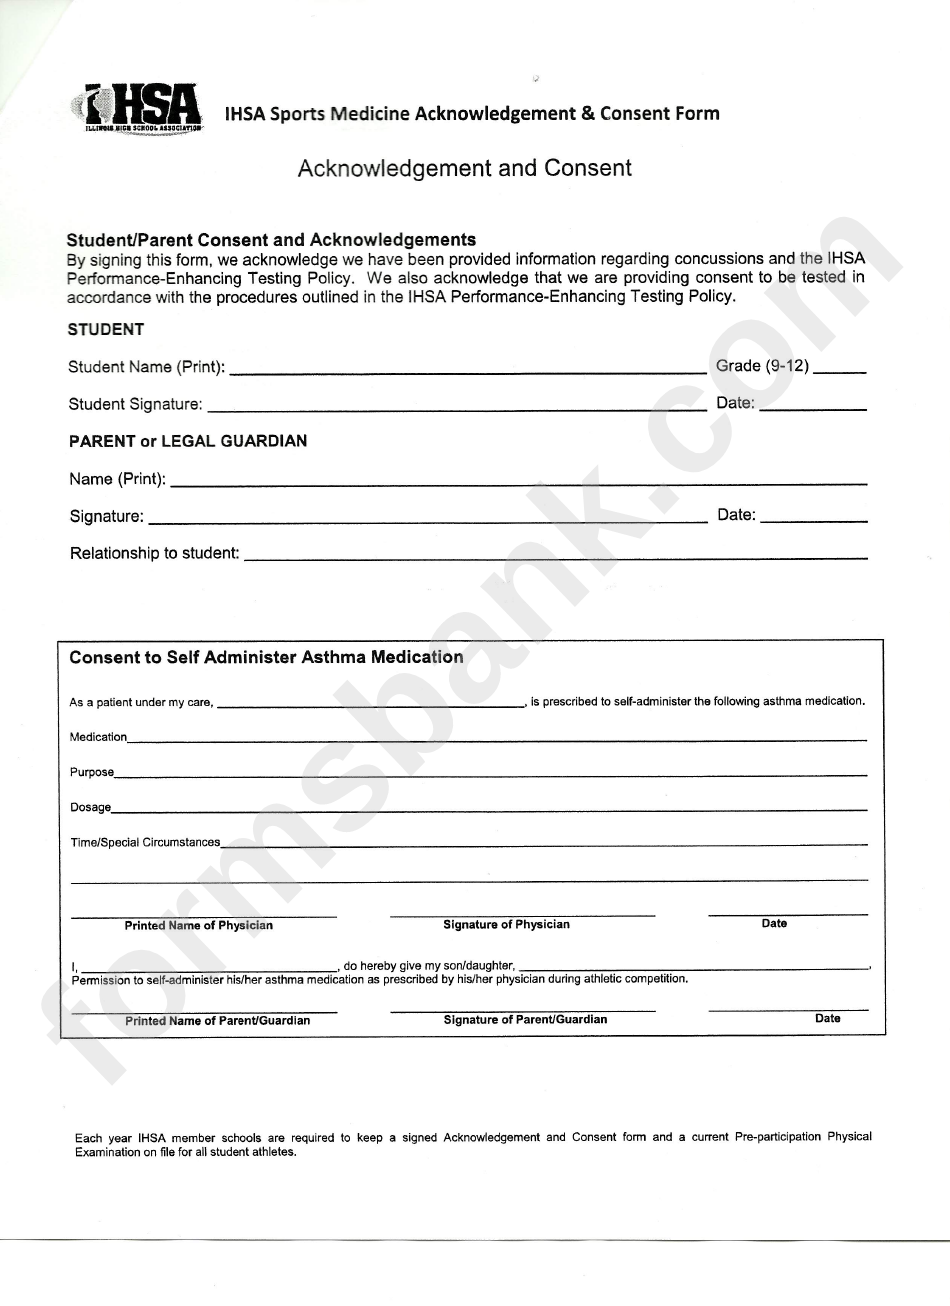 Ihsa Sports Medicine Acknowledgement & Consent Form printable pdf ...